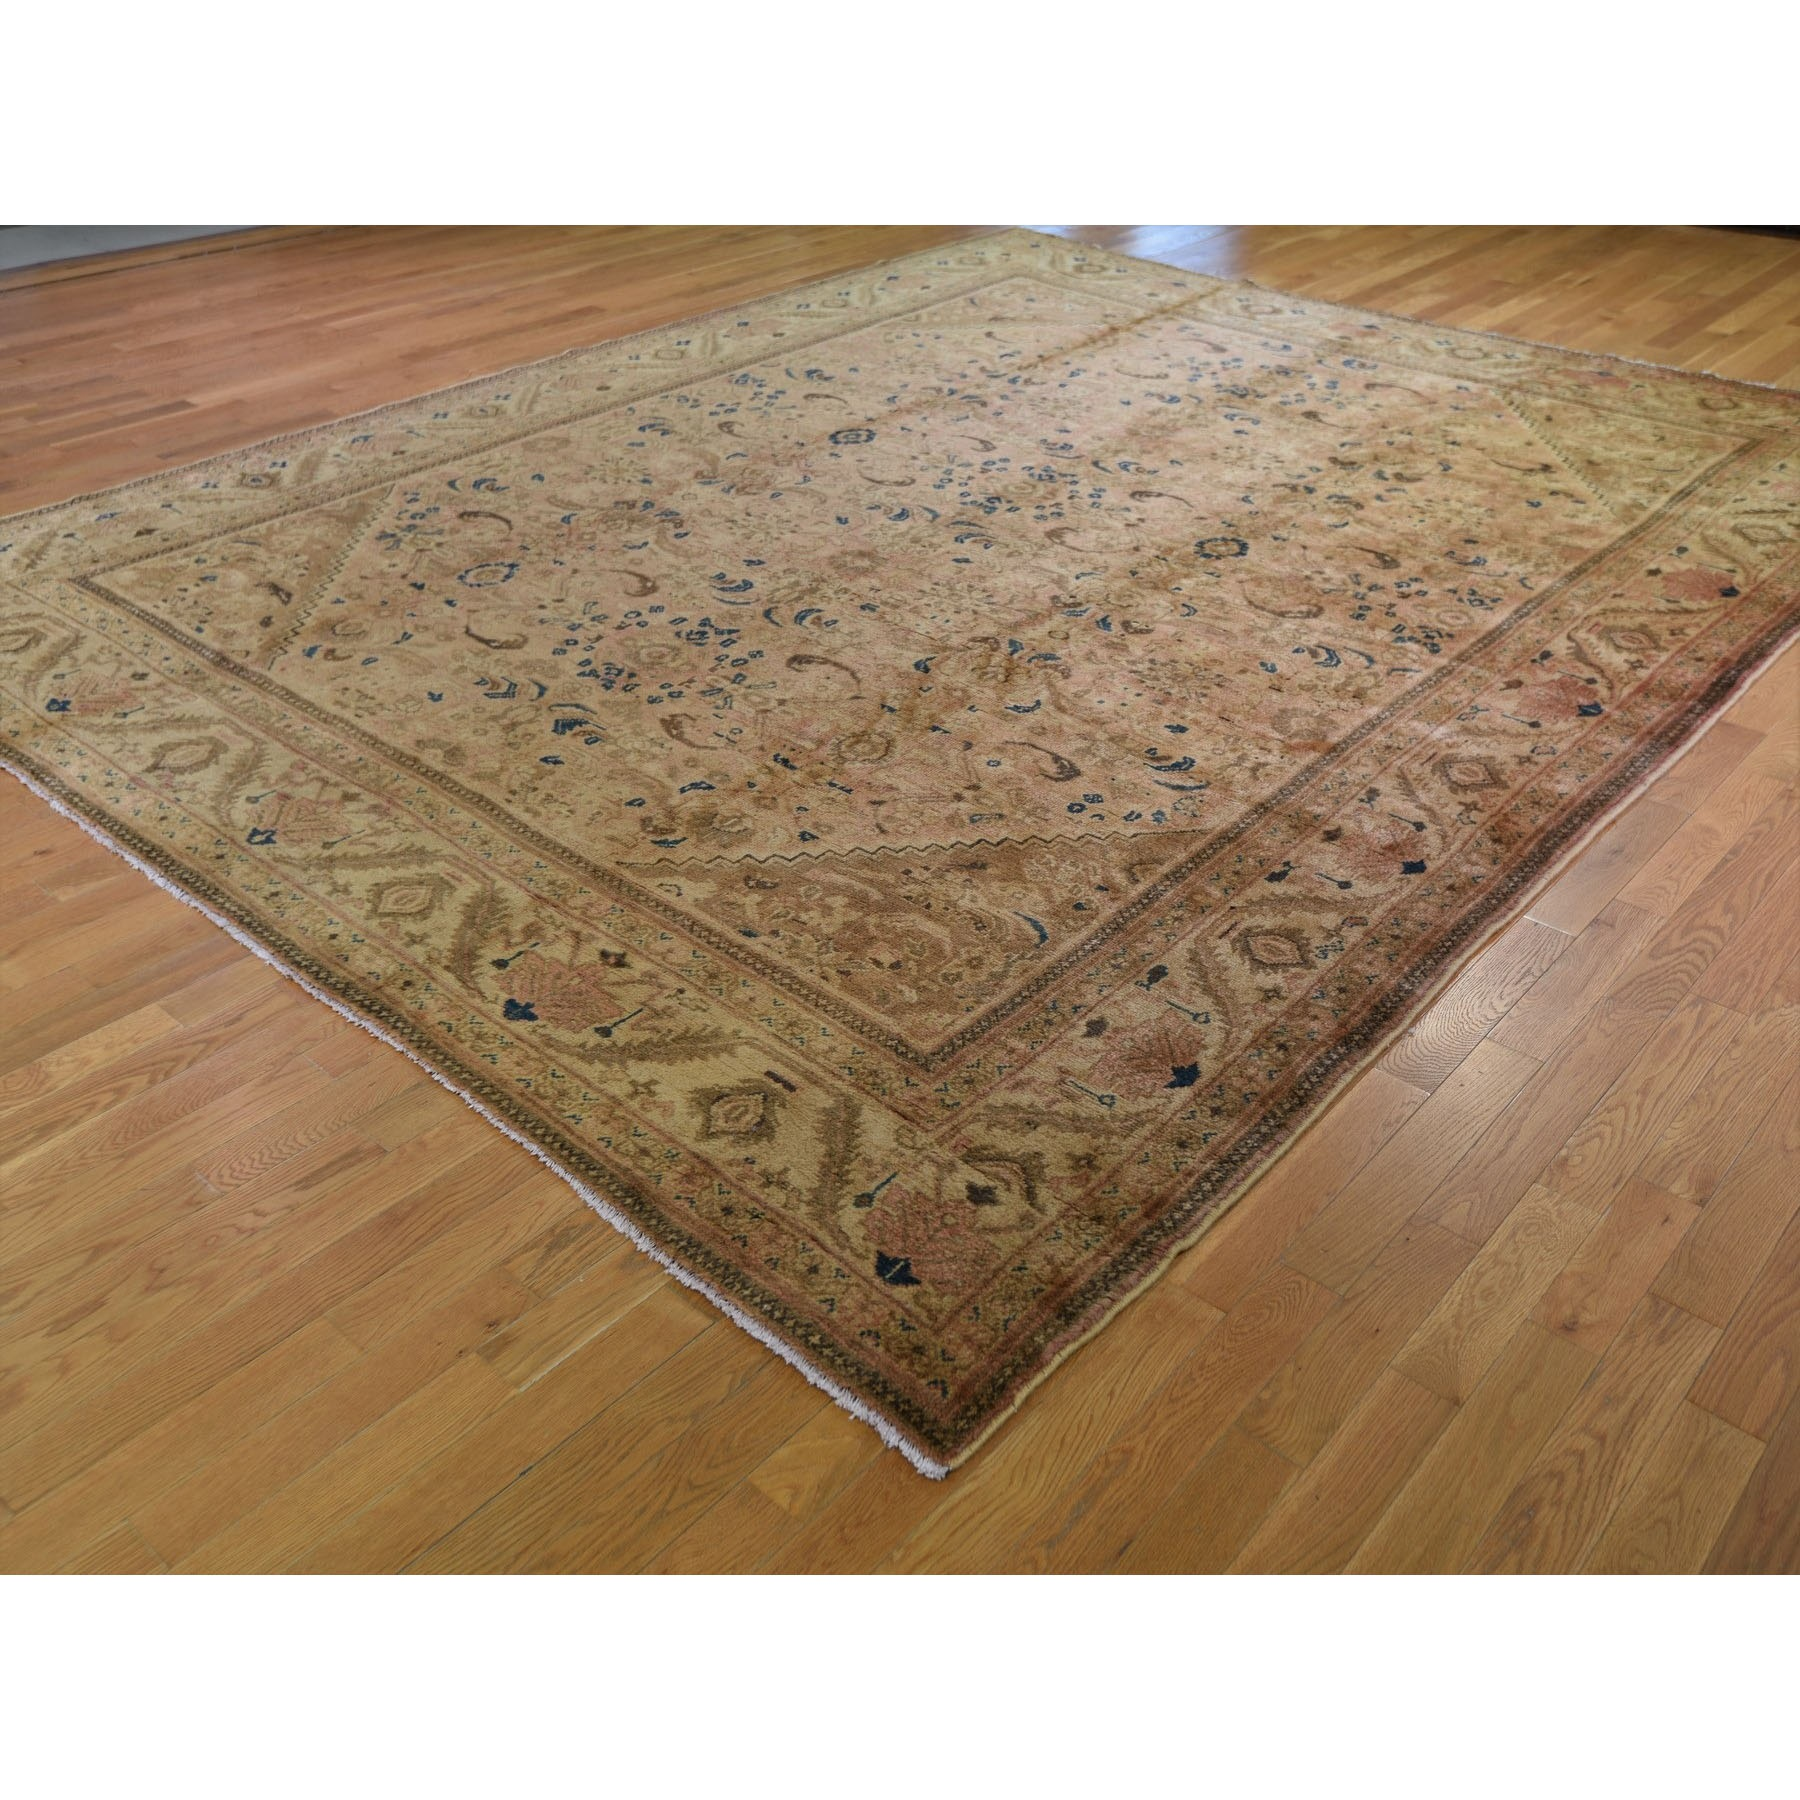 """10'8""""x13'6"""" Vintage Persian Mahal With Apricot Wash Full Pile Pure Wool Hand Knotted Oriental Rug"""